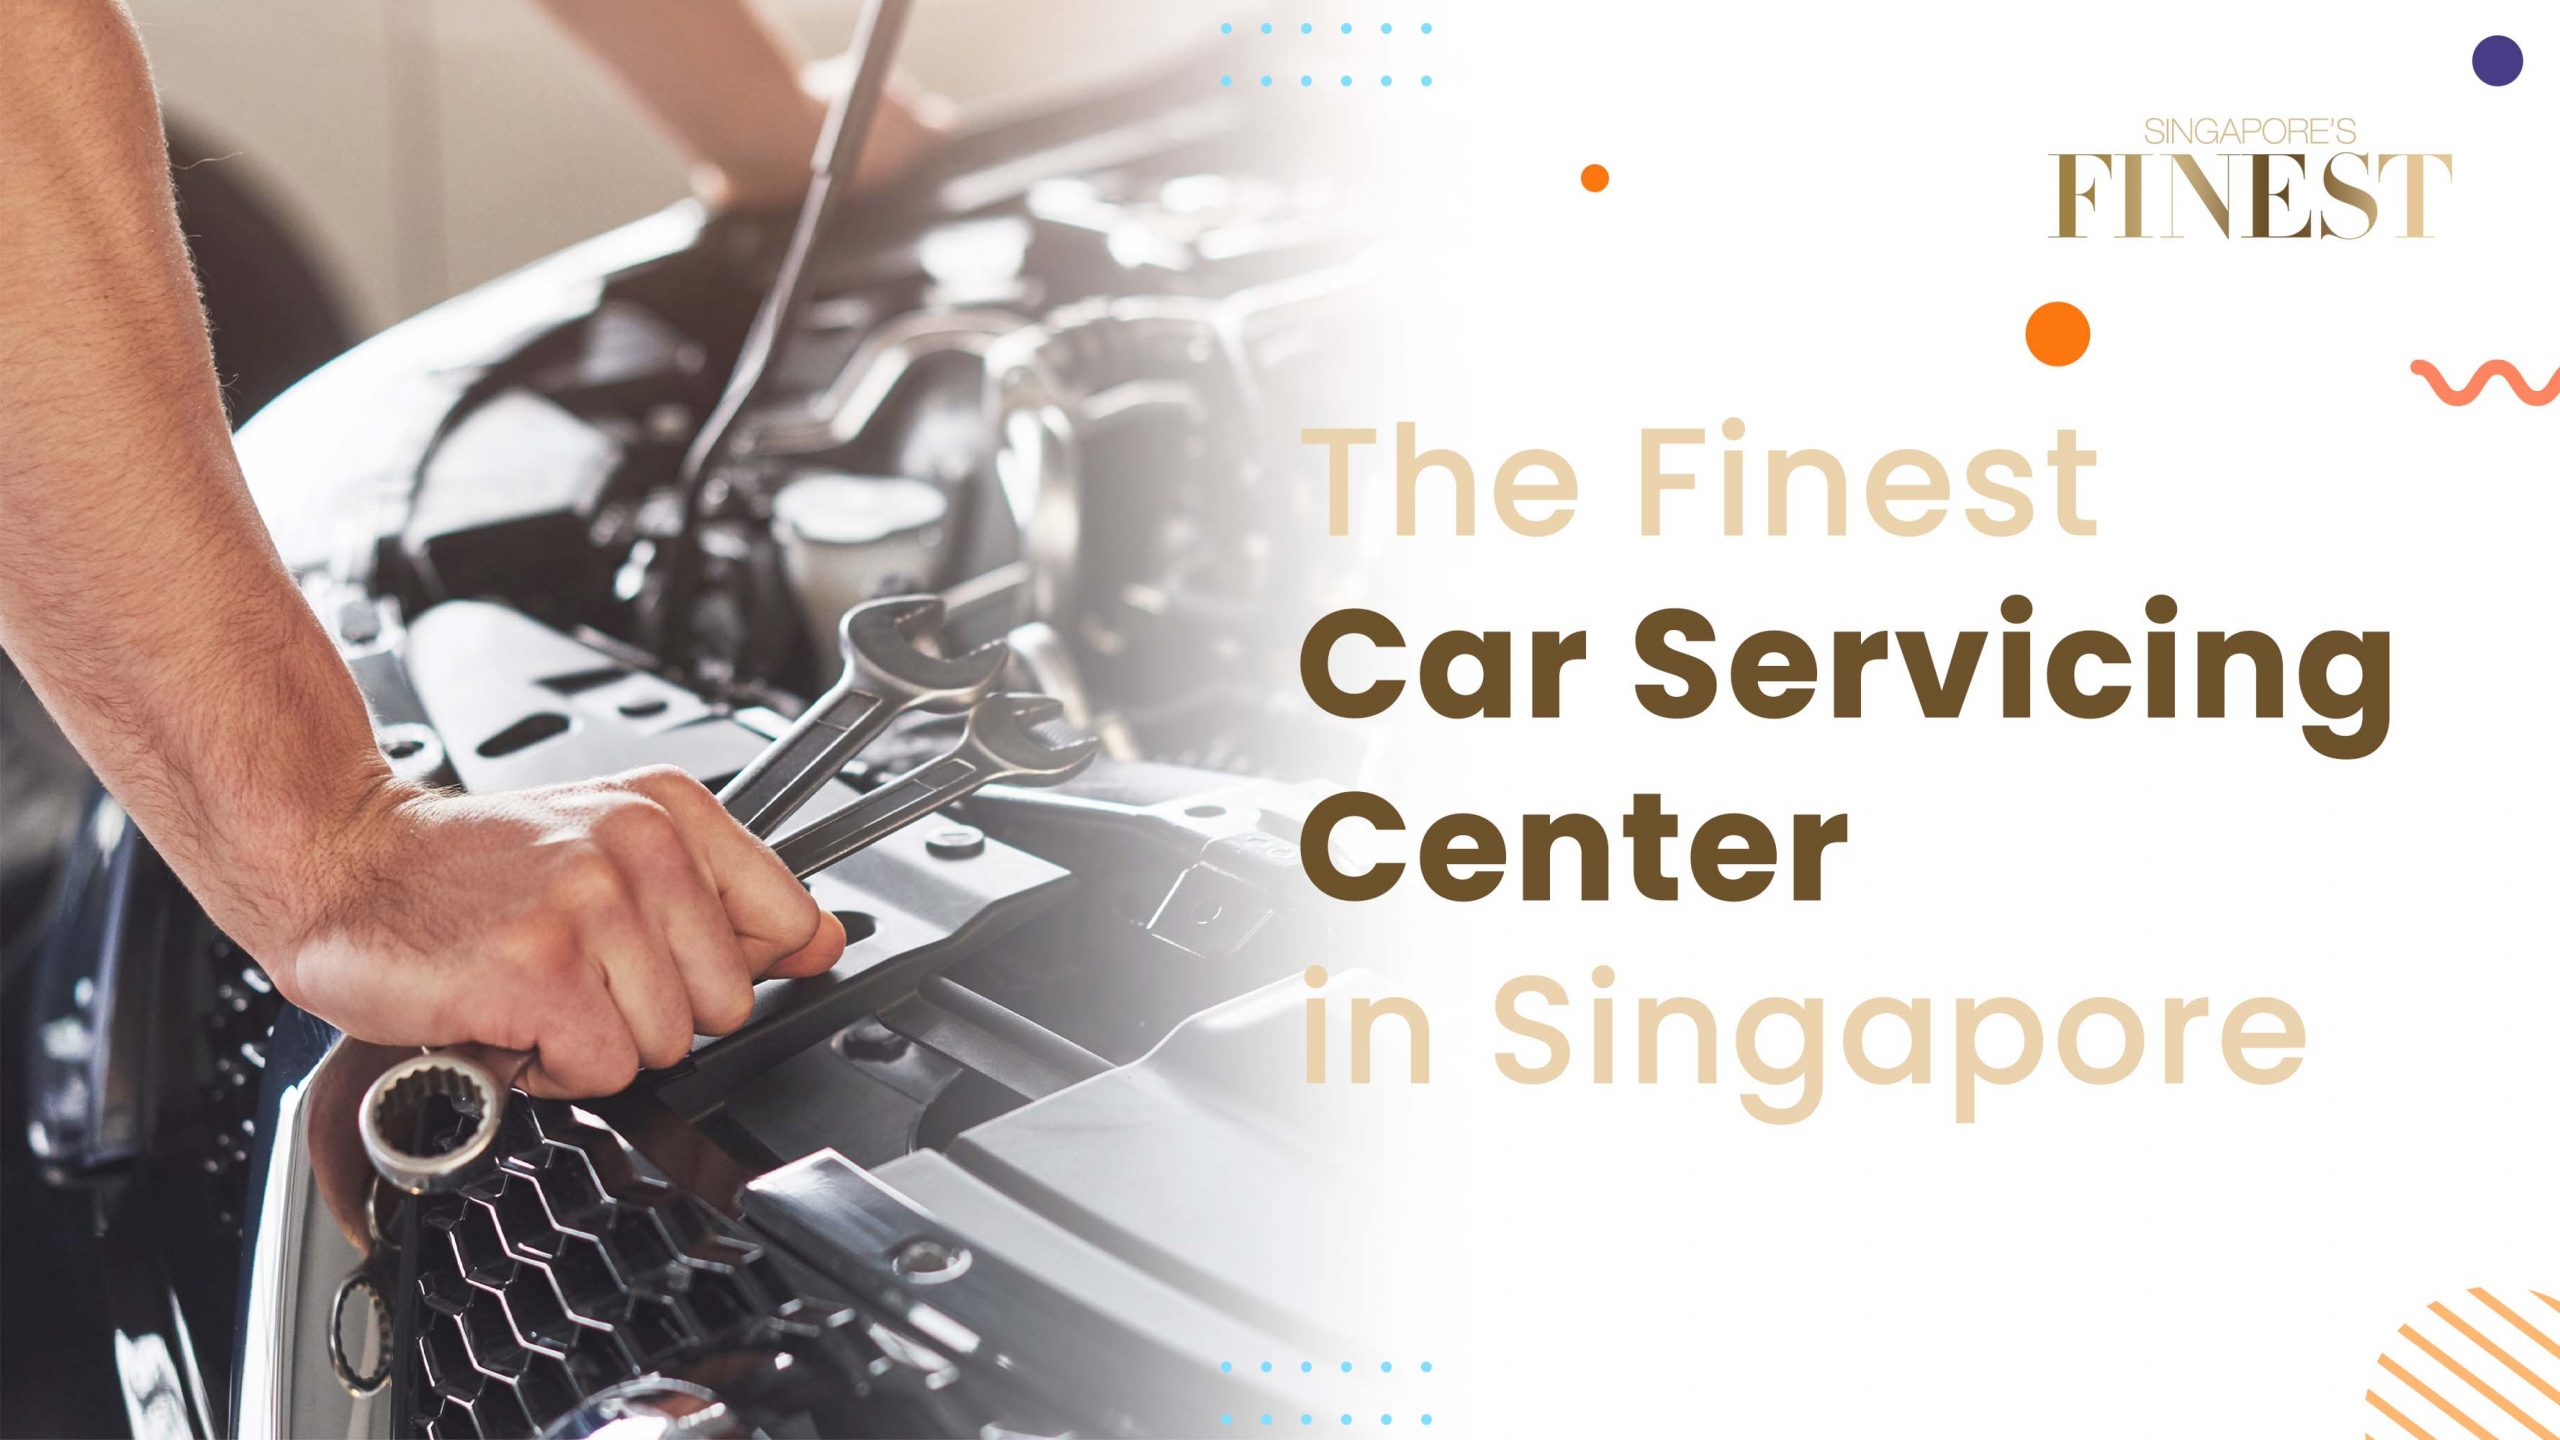 Car Servicing Center in Singapore